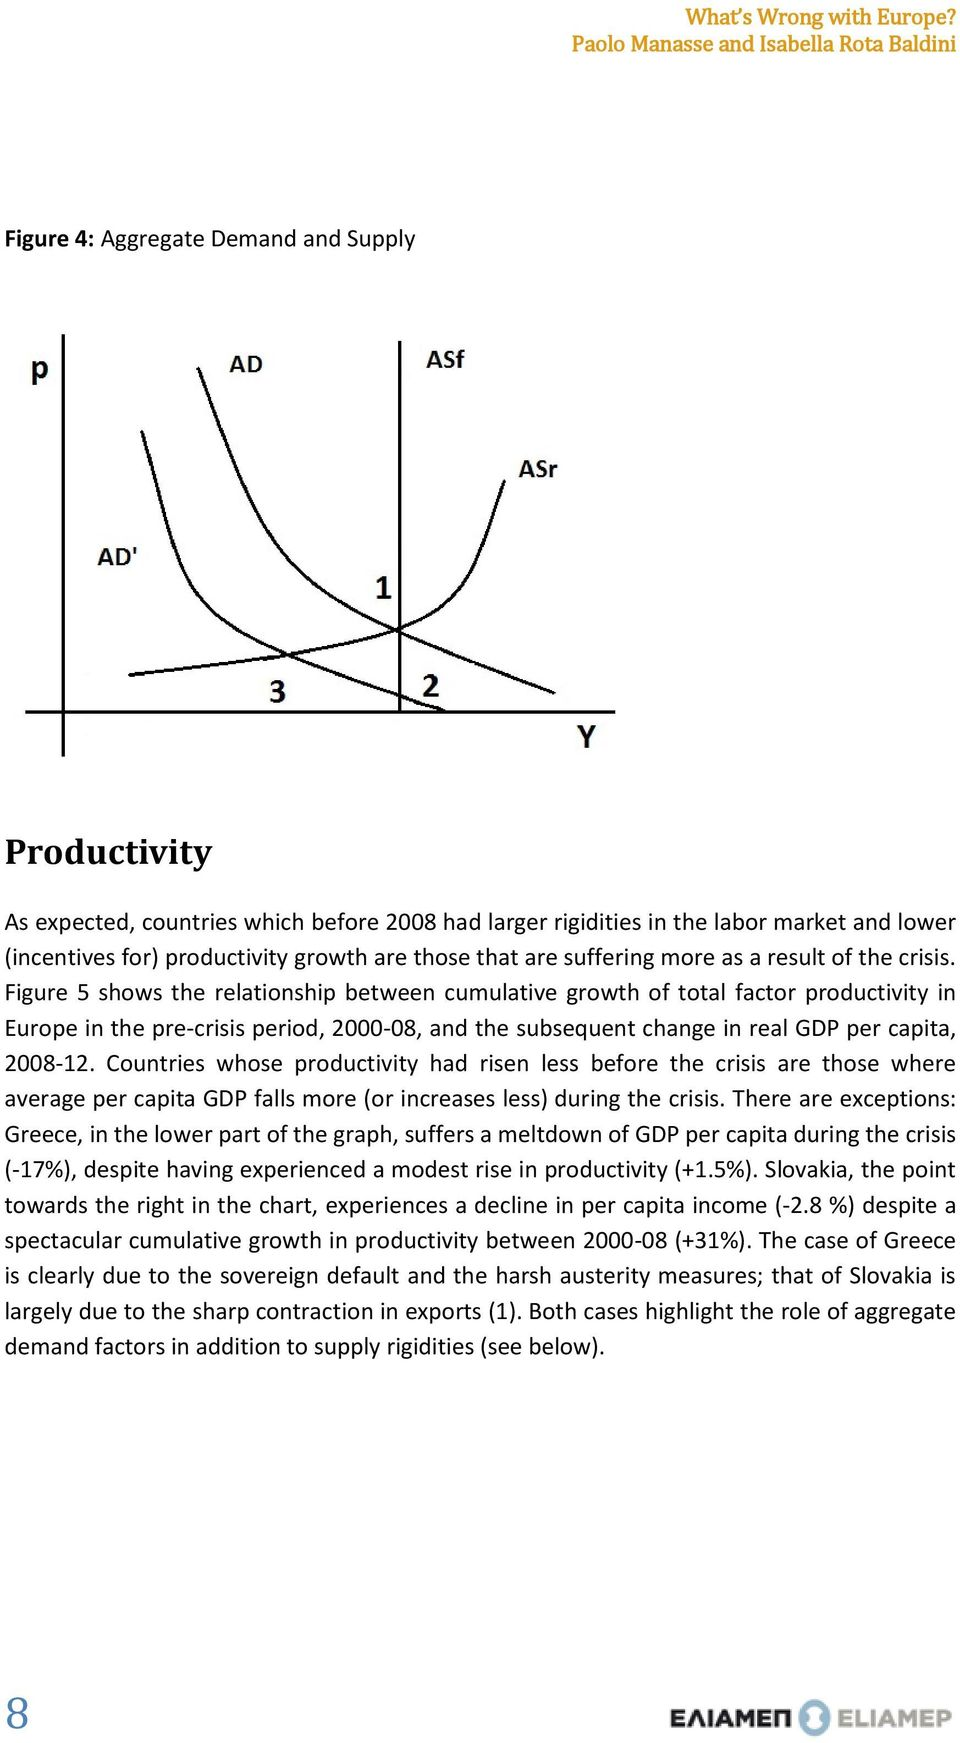 Figure 5 shows the relationship between cumulative growth of total factor productivity in Europe in the pre-crisis period, 2000-08, and the subsequent change in real GDP per capita, 2008-12.